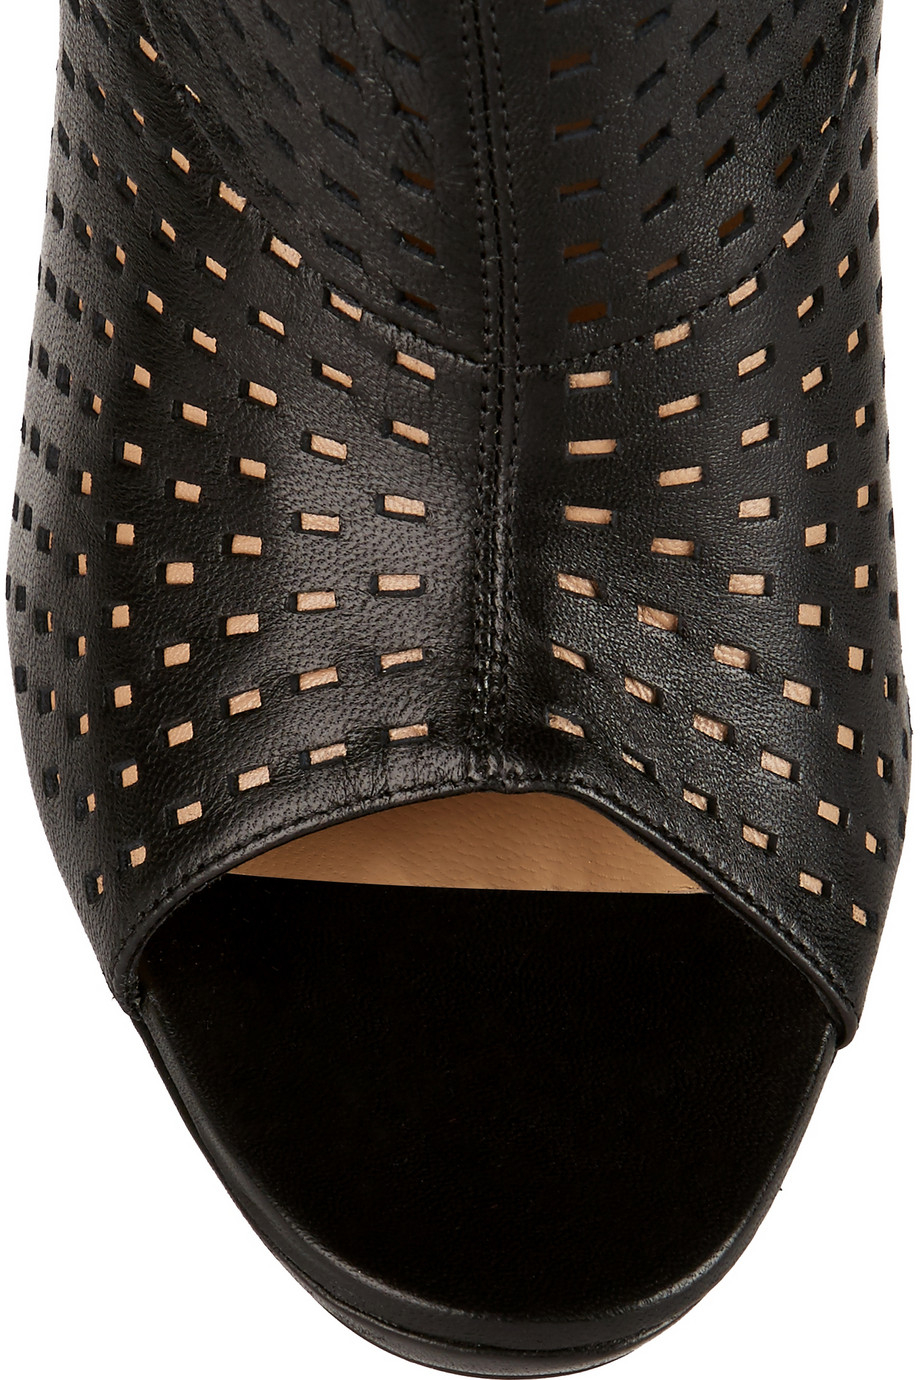 louboutin jennifer perforated leather boots